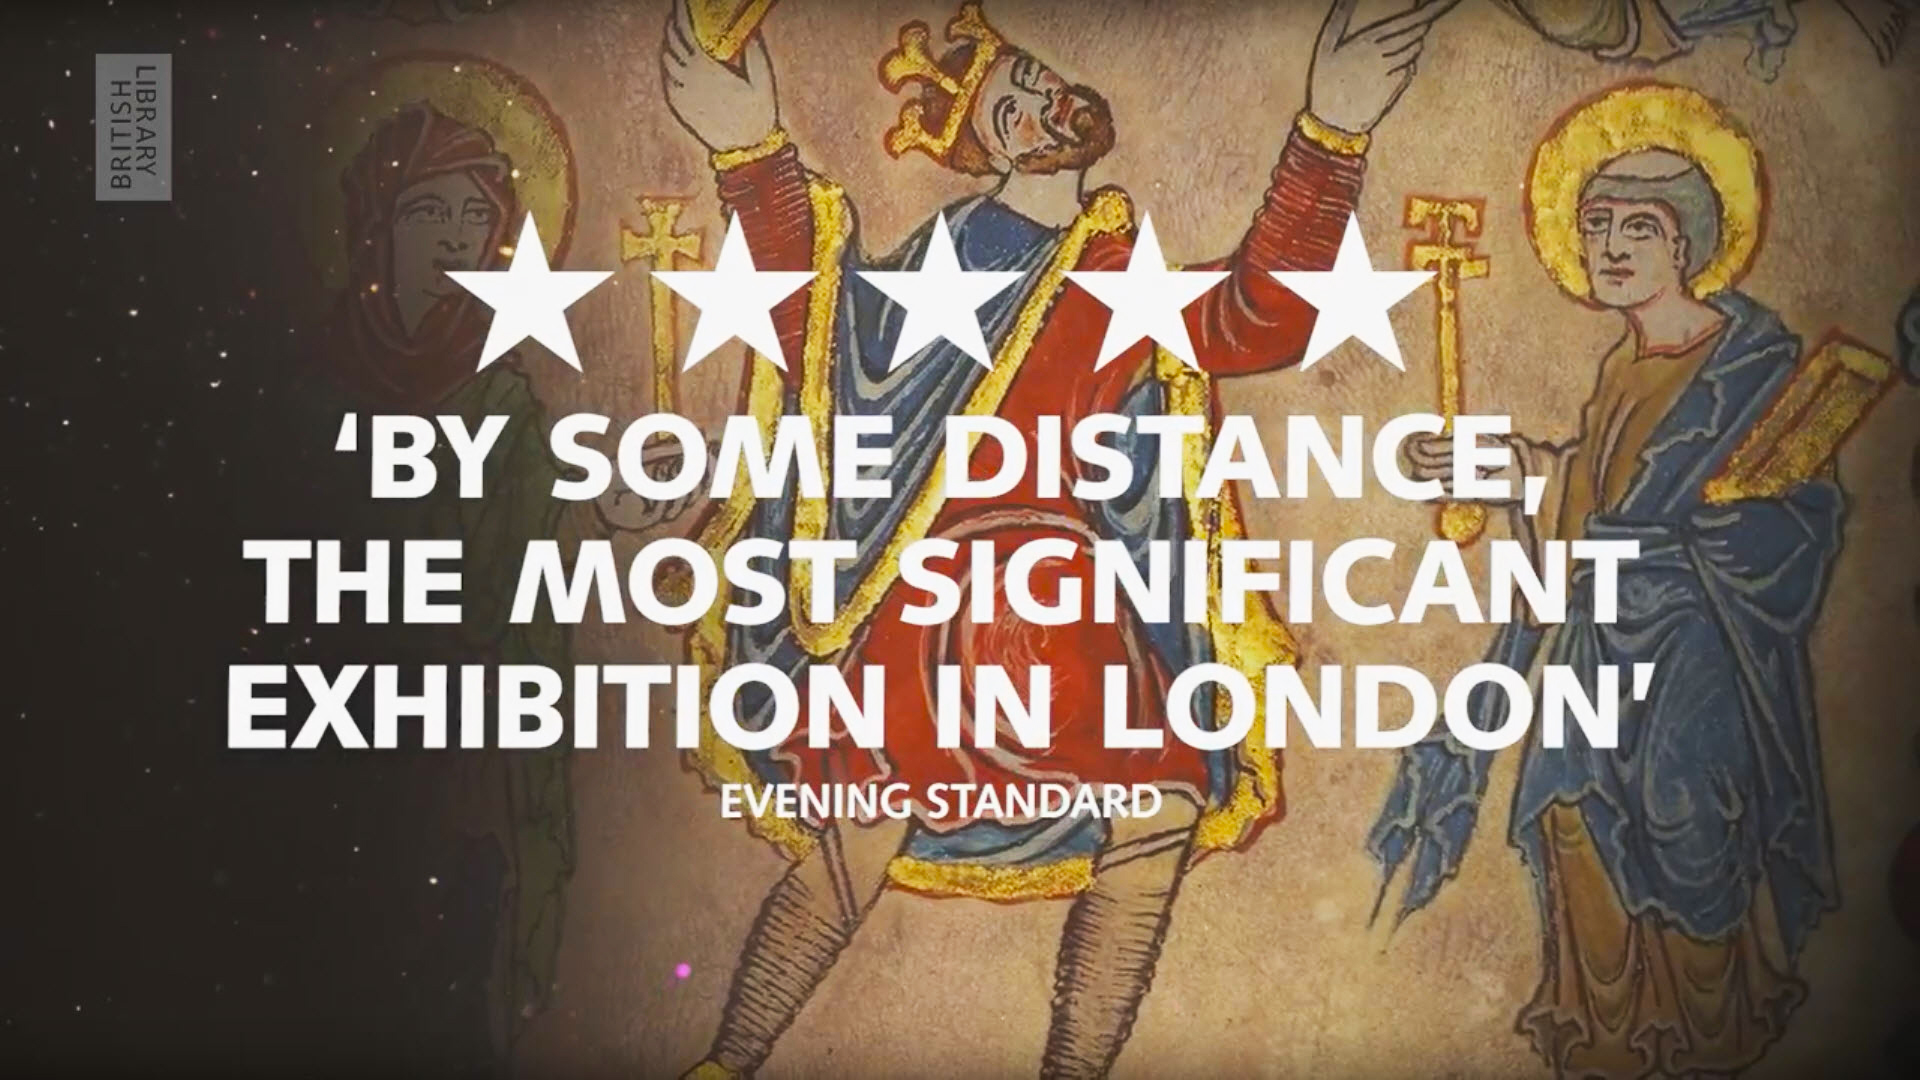 Five star review by Evening Standard – 'By Some Distance, The Most Significant Exhibition In London'